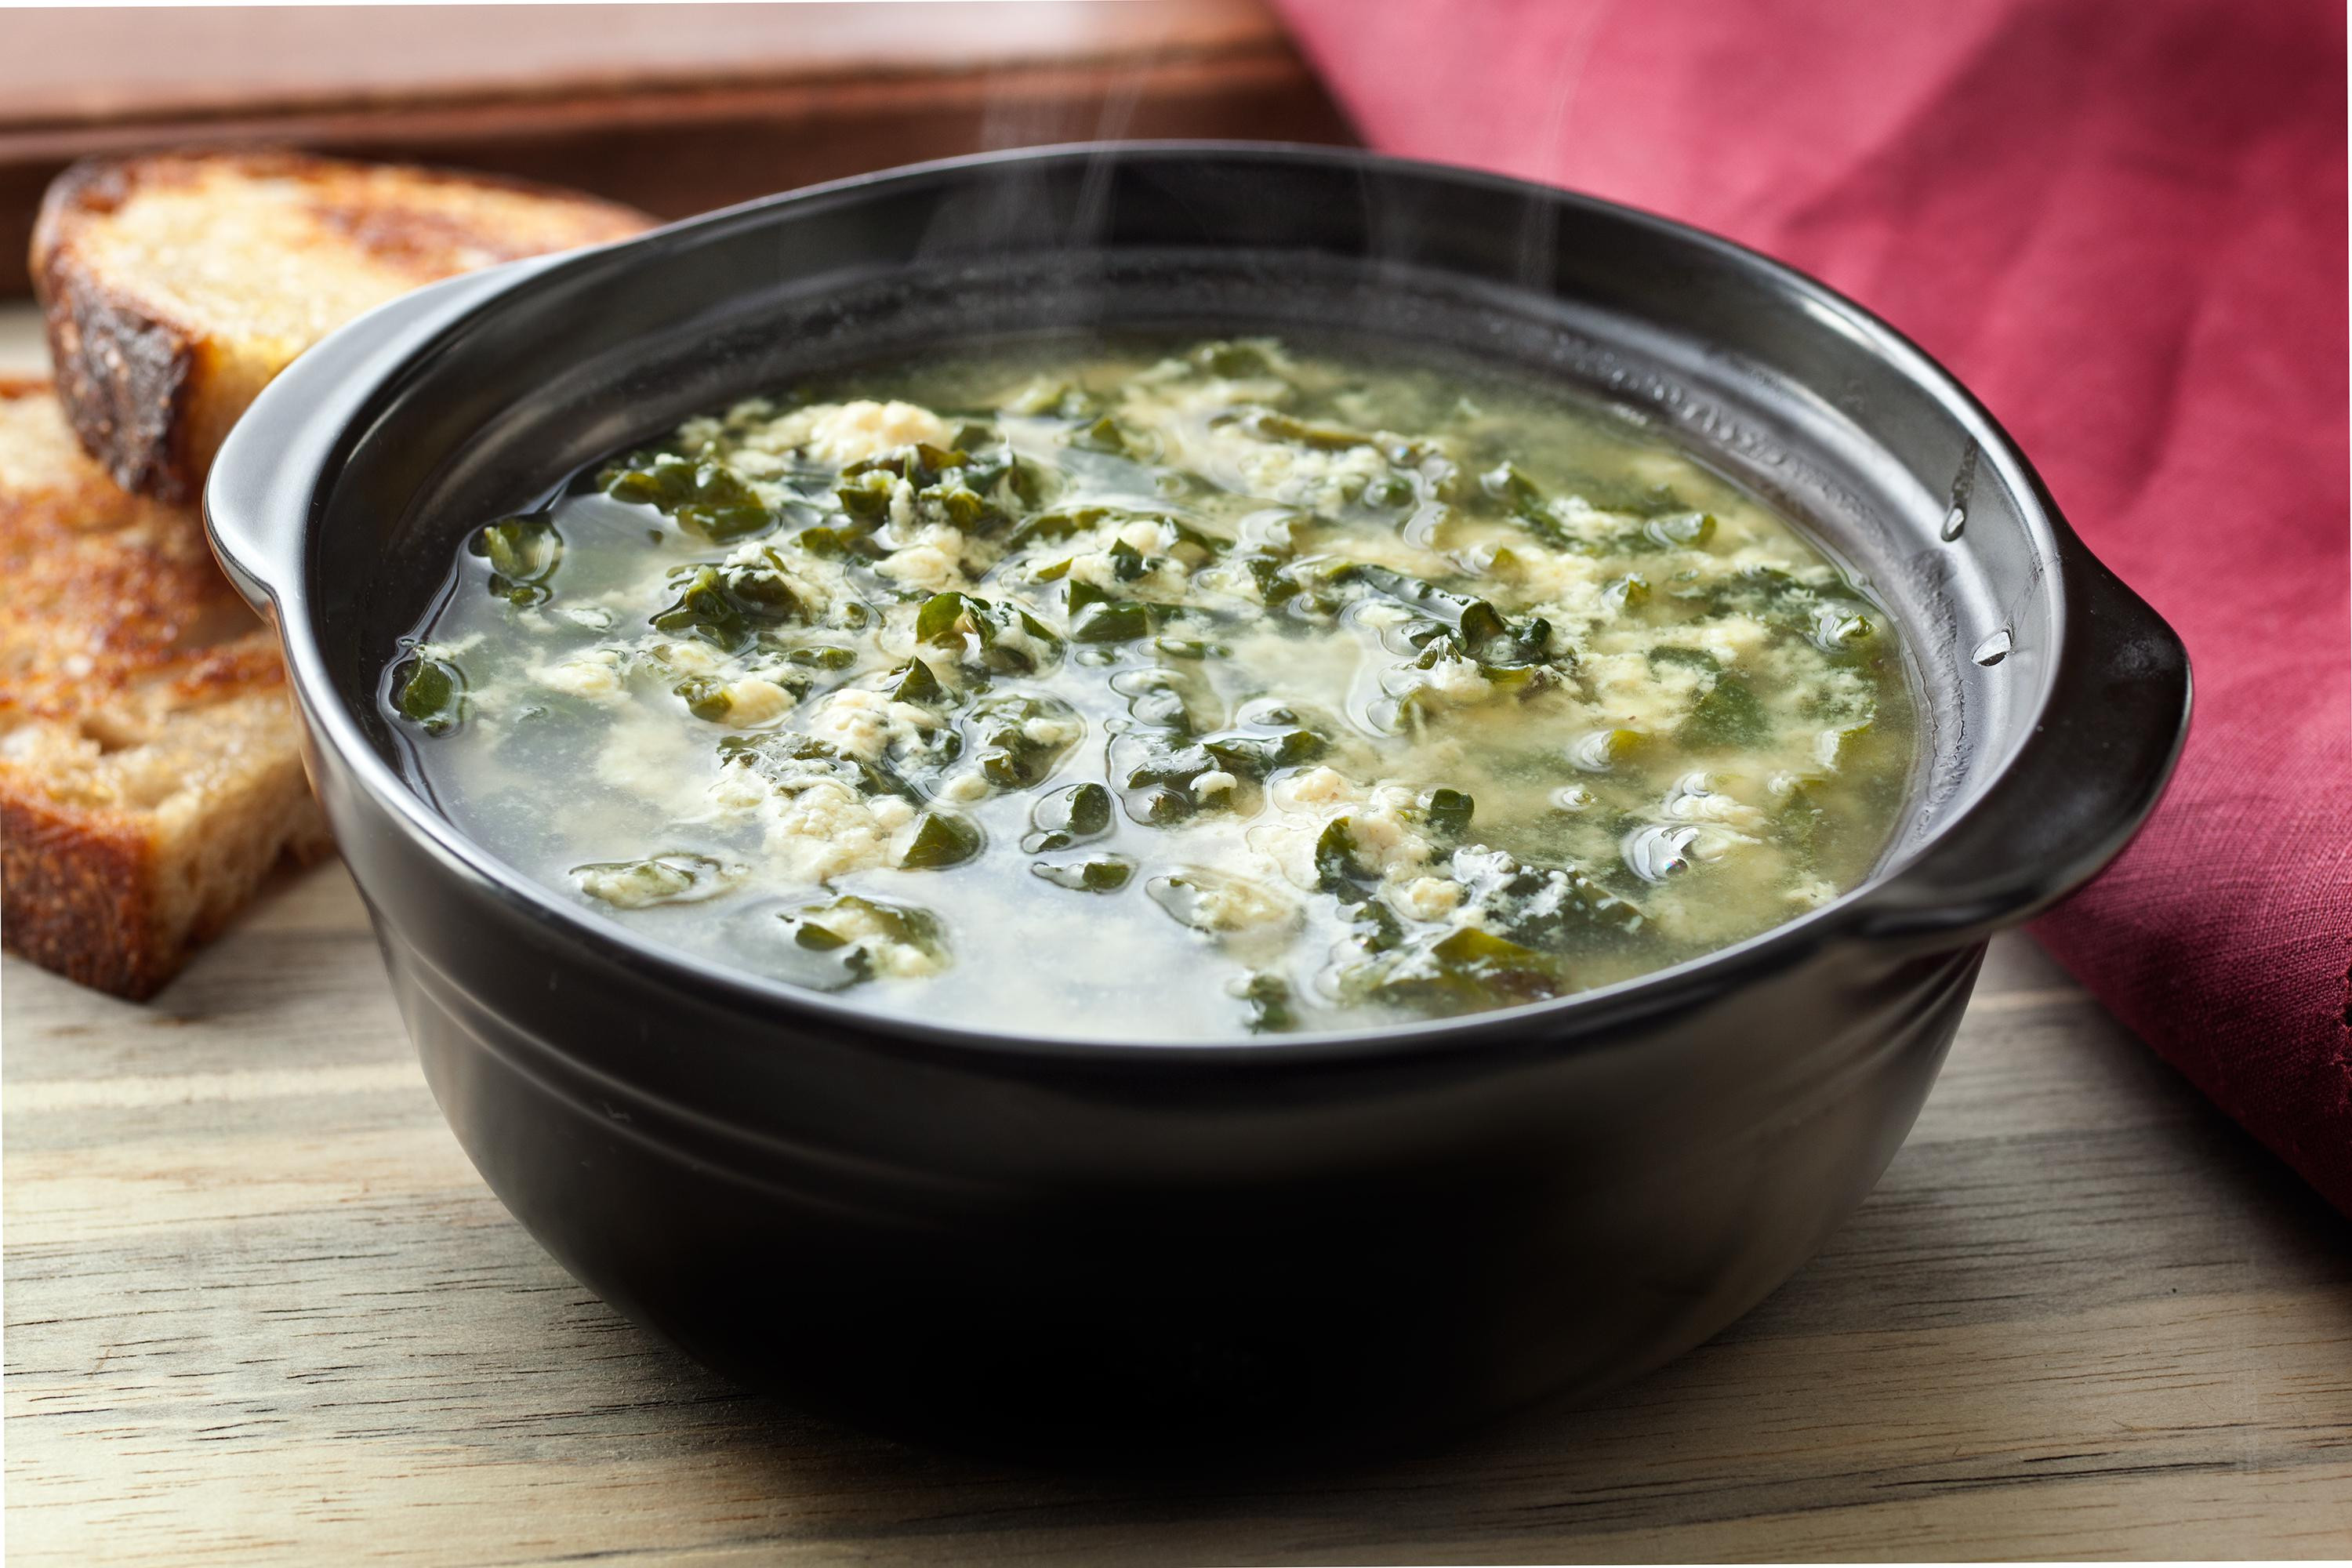 Healthy Winter Soups  Healthy Winter Soup Recipes Chowhound